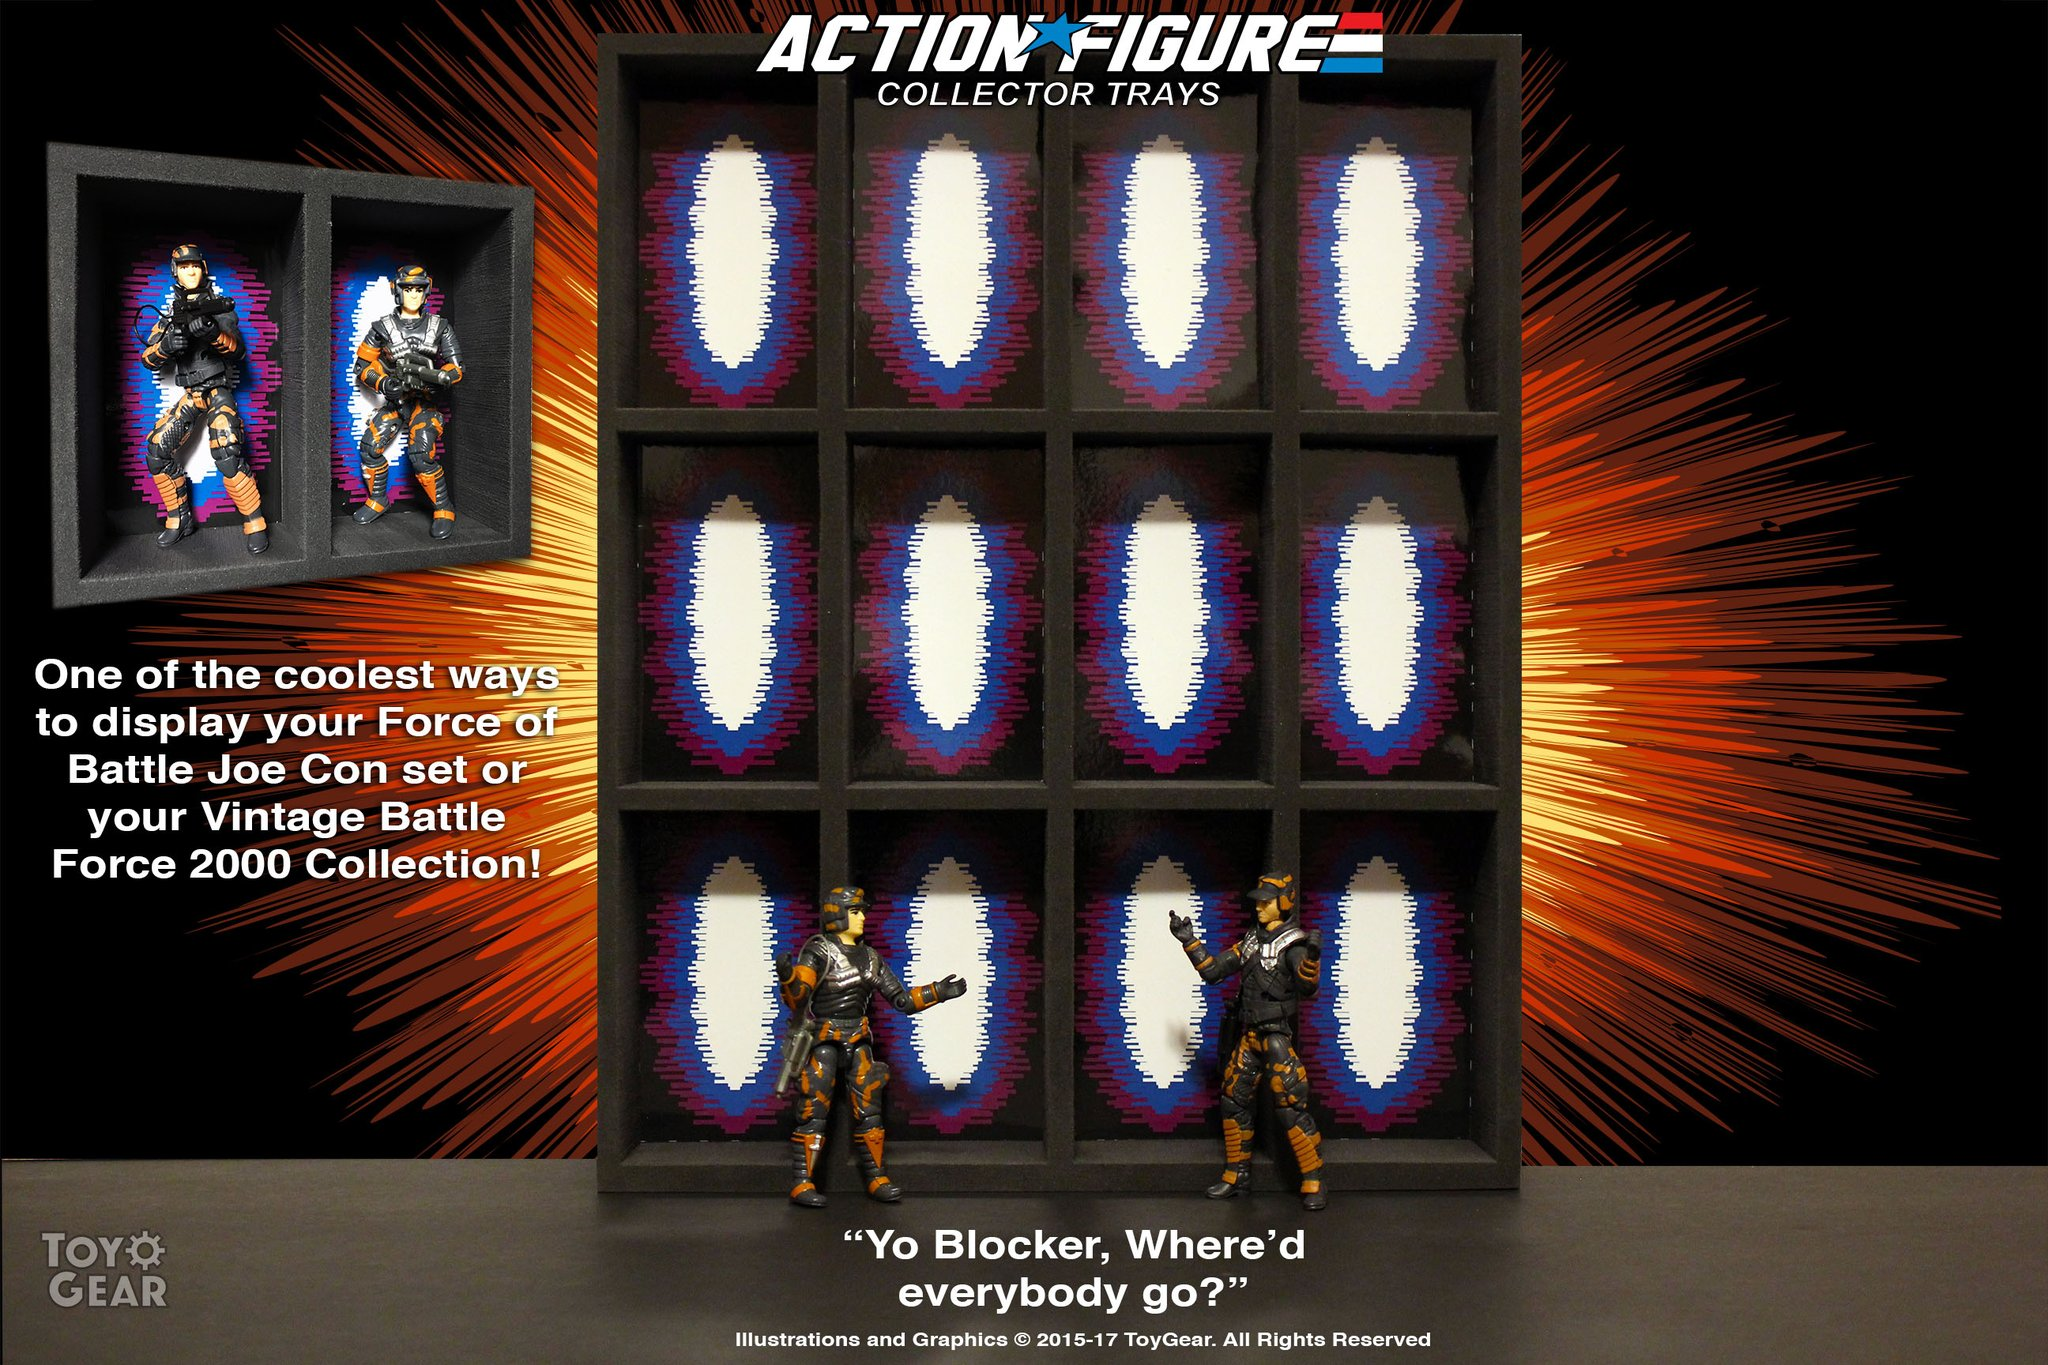 Toy Gear Reveals GIJoe Battleforce 2000 Background for Action 2048x1365